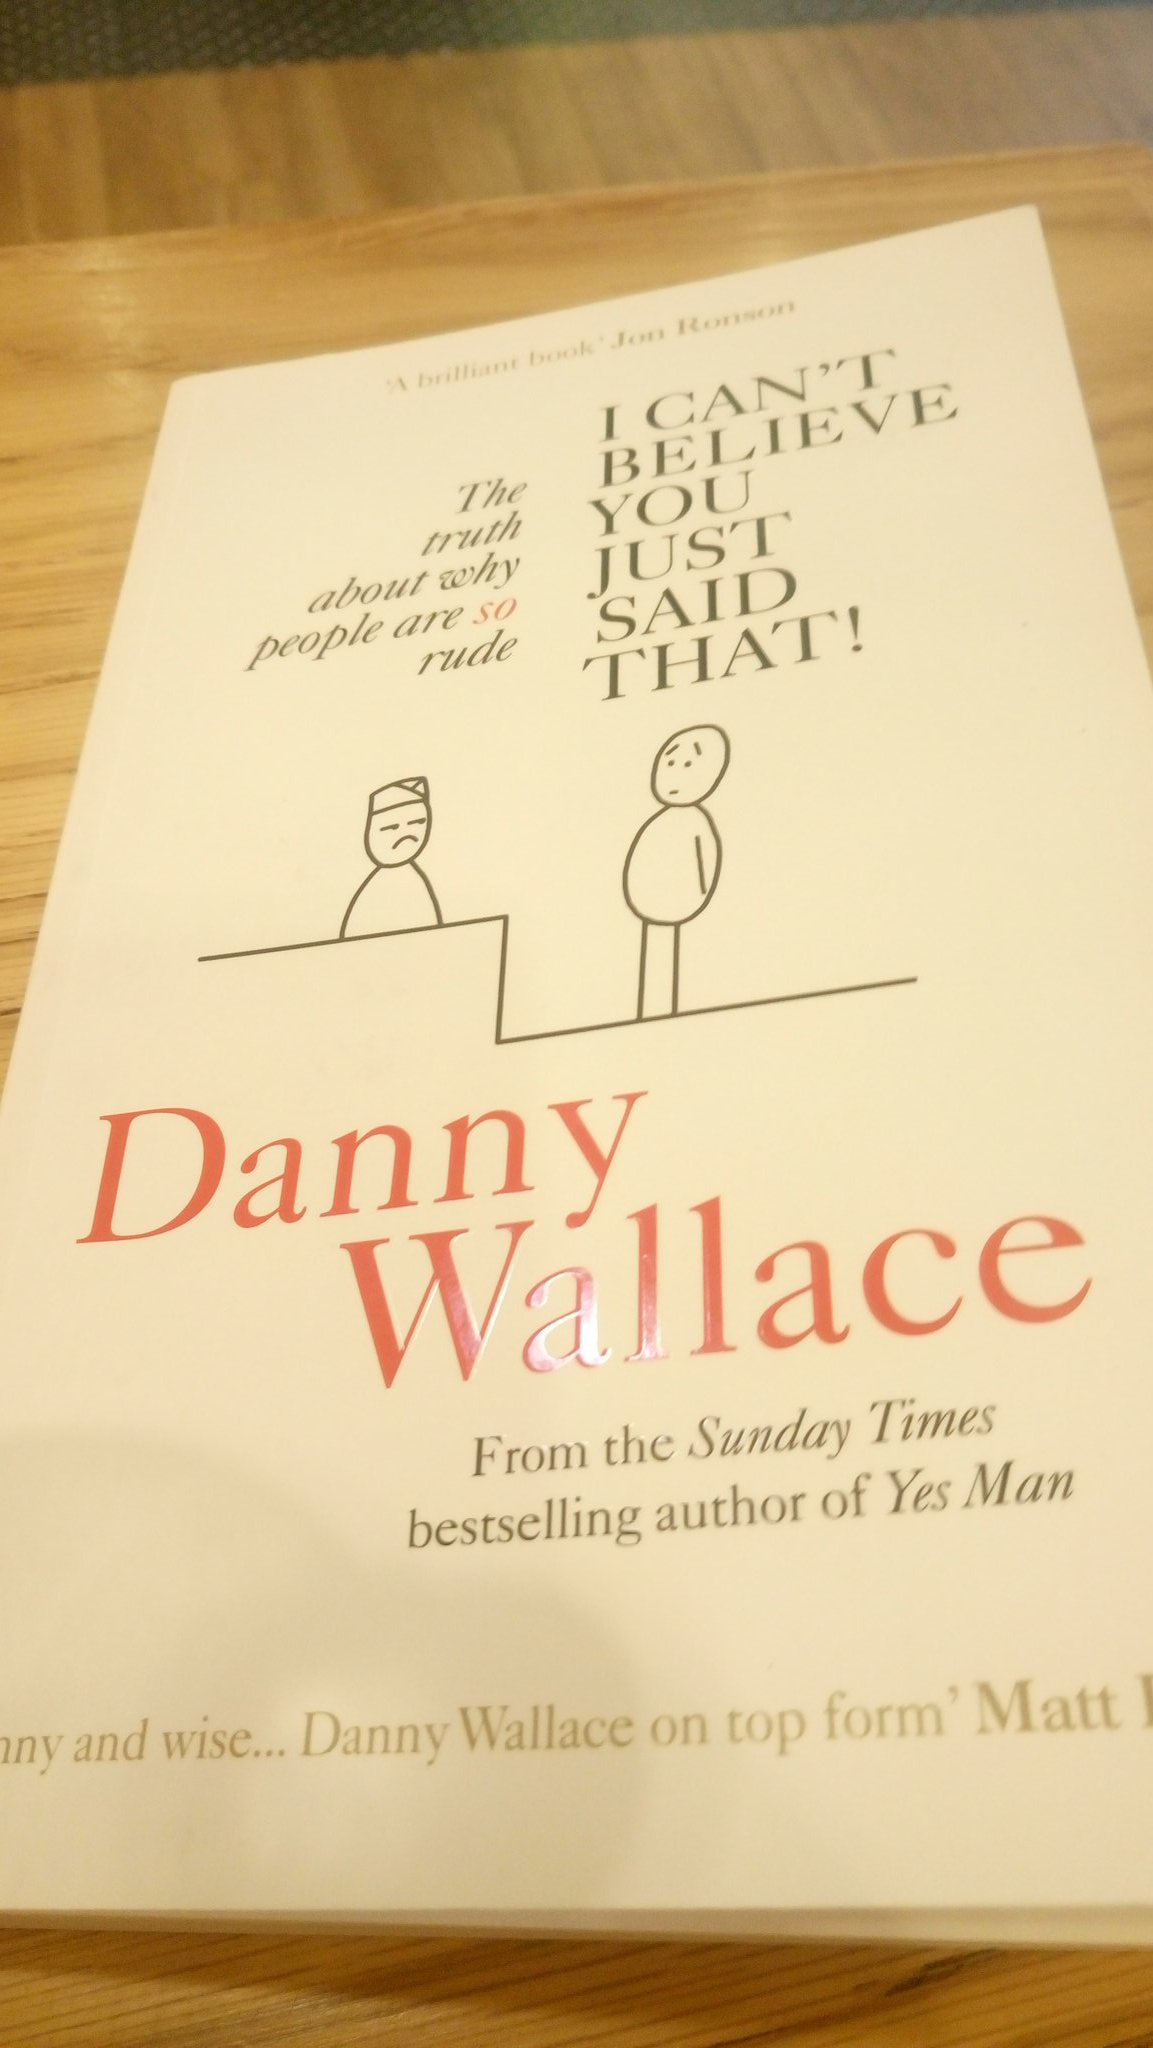 RT @nick_philp: This from @dannywallace should be compulsory reading in London, just on the off chance. https://t.co/s89pvkyk7j